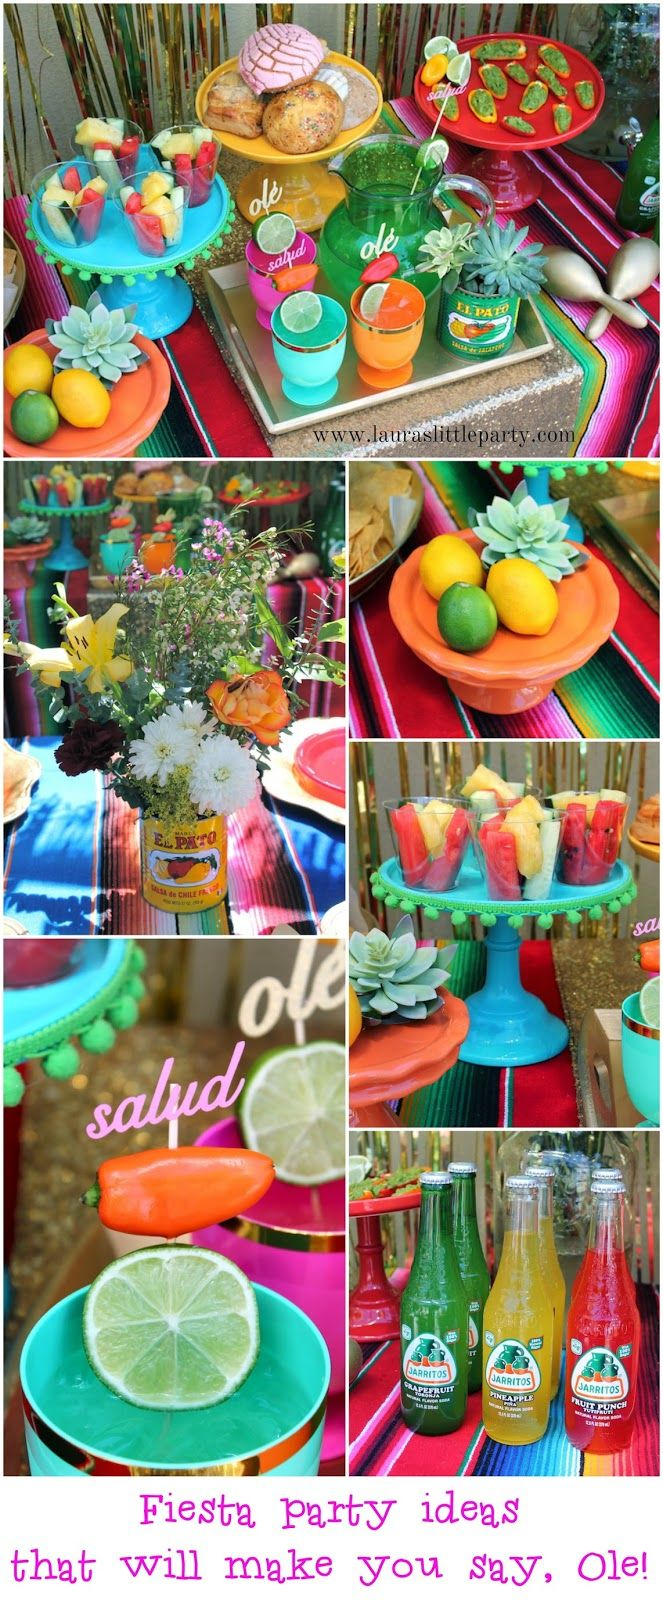 A blog about fun party inspiration, DIY projects, recipes, and more.